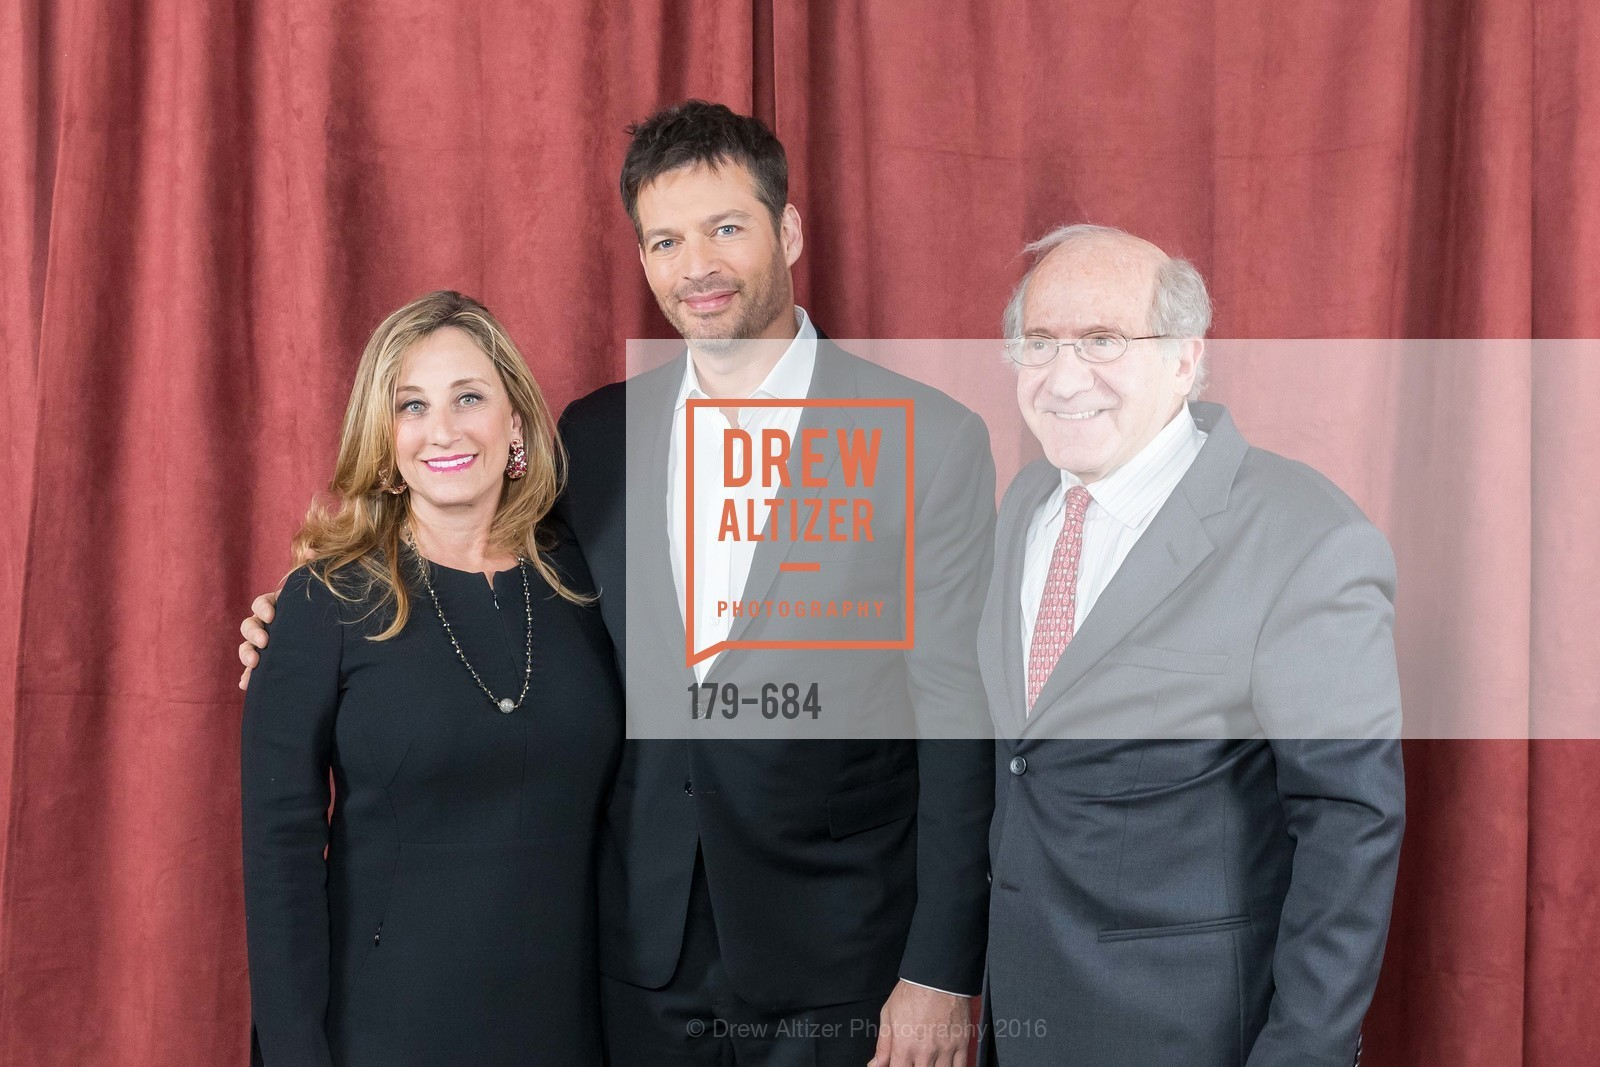 Dianne Taube, Harry Connick Jr., Jonathan Berek, Under One Umbrella, Sharon Heights Golf and Country Club, January 13th, 2016,Drew Altizer, Drew Altizer Photography, full-service agency, private events, San Francisco photographer, photographer california